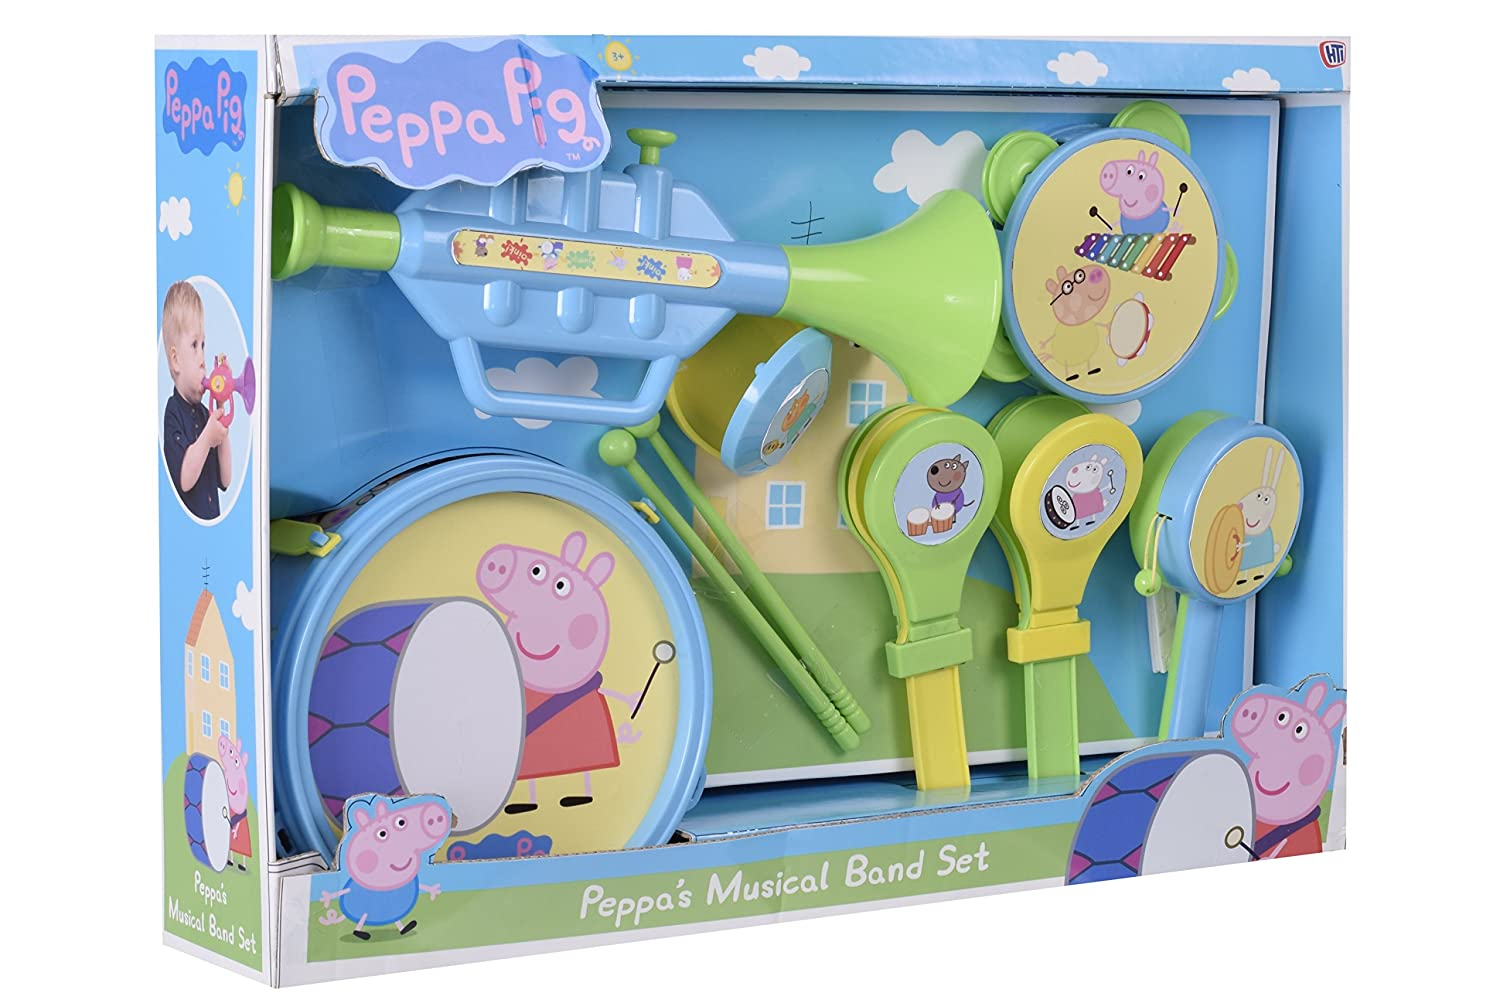 Peppa Pig Musical Band Set HTI 1383757